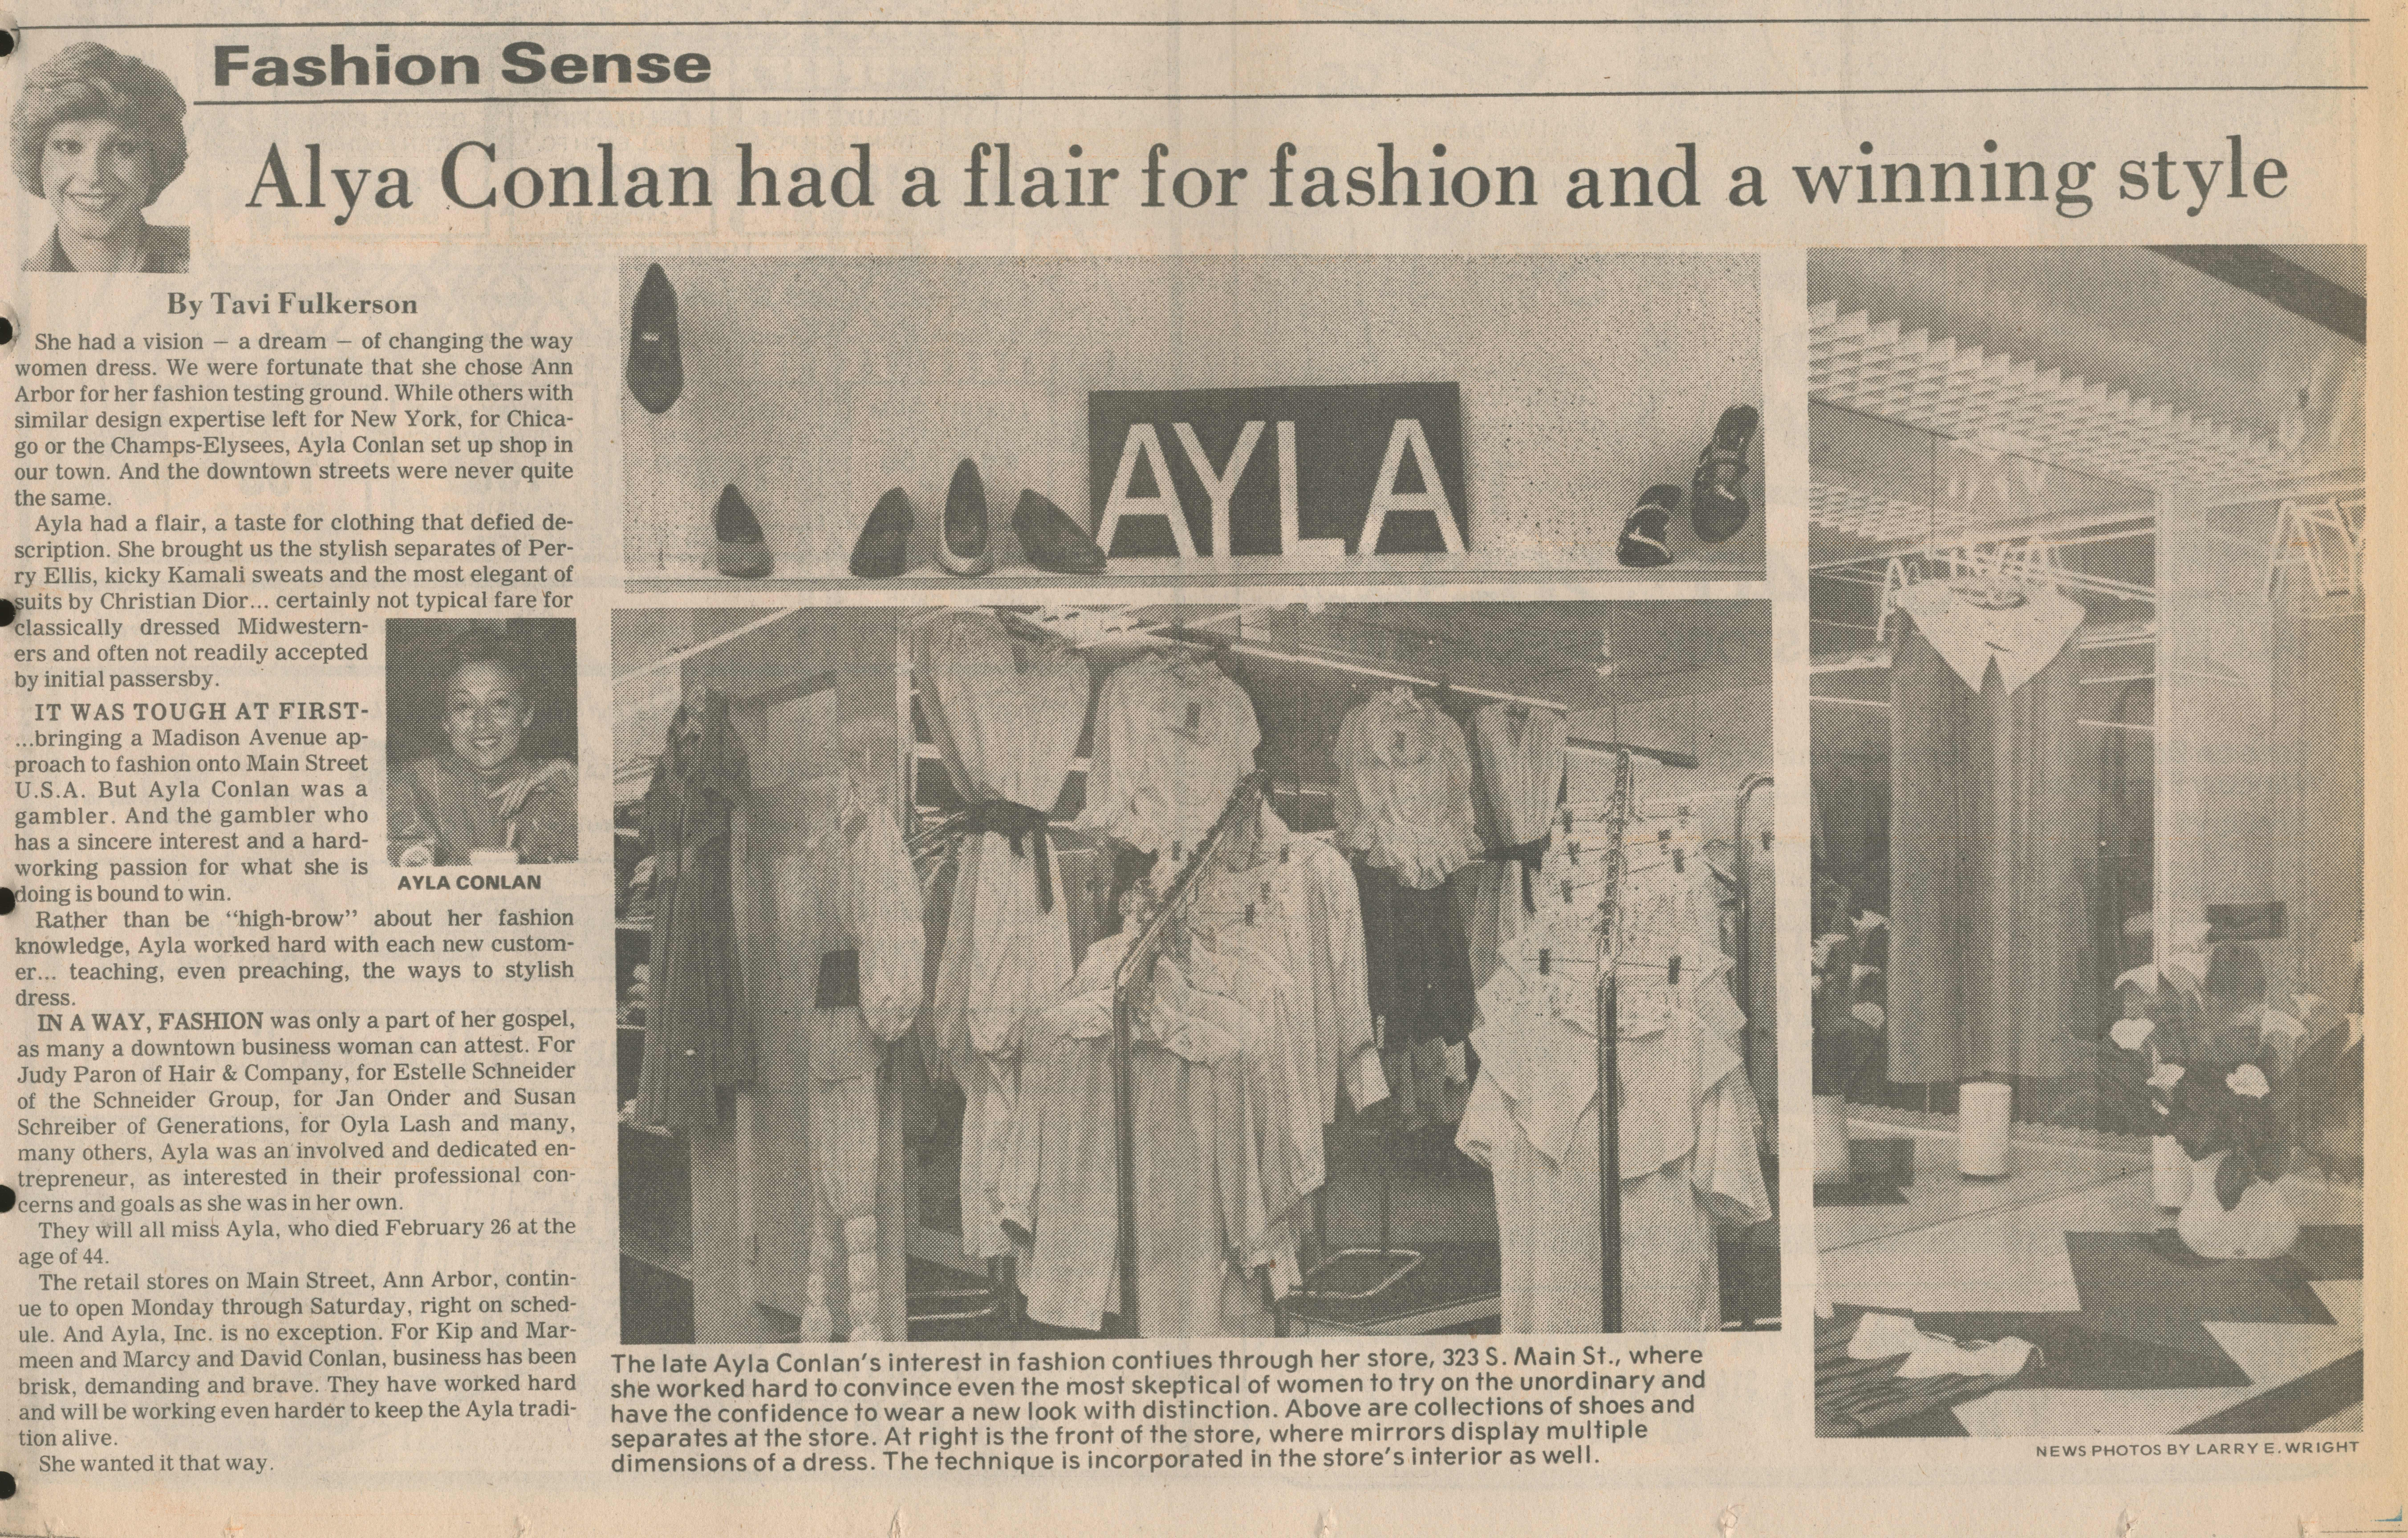 Ayla Conlan had a flair for fashion and a winning style image